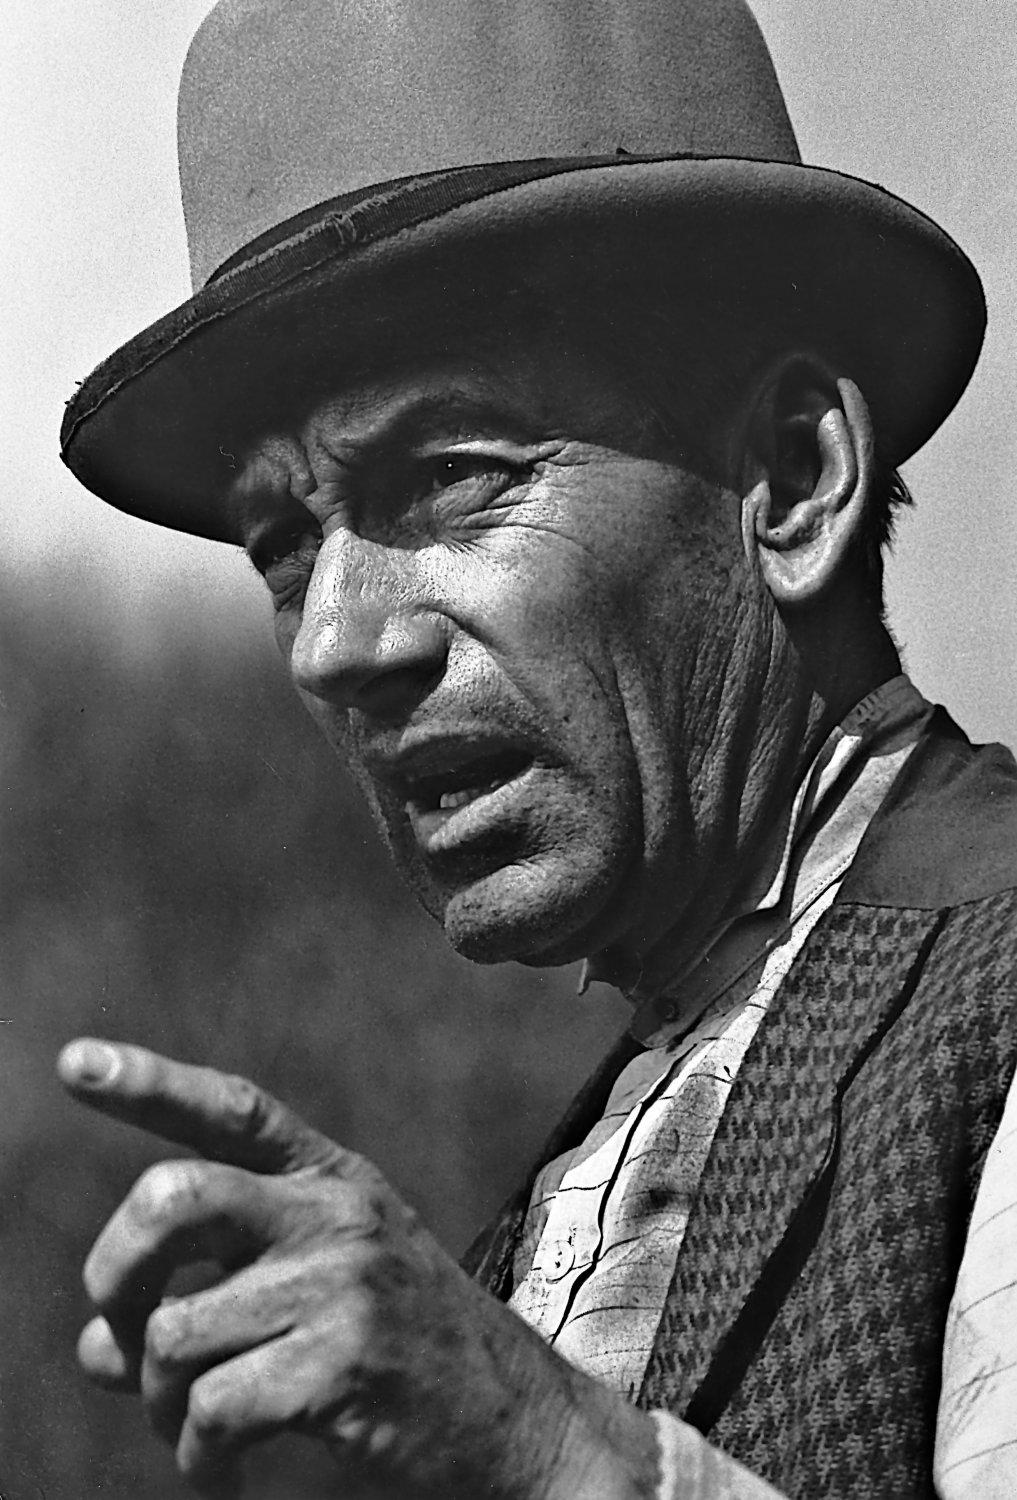 - Hoagy Carmichael in a character role on Laramie. - Photojournalism - Life Magazine - NBC TV - - art  - photography - by Tony Karp